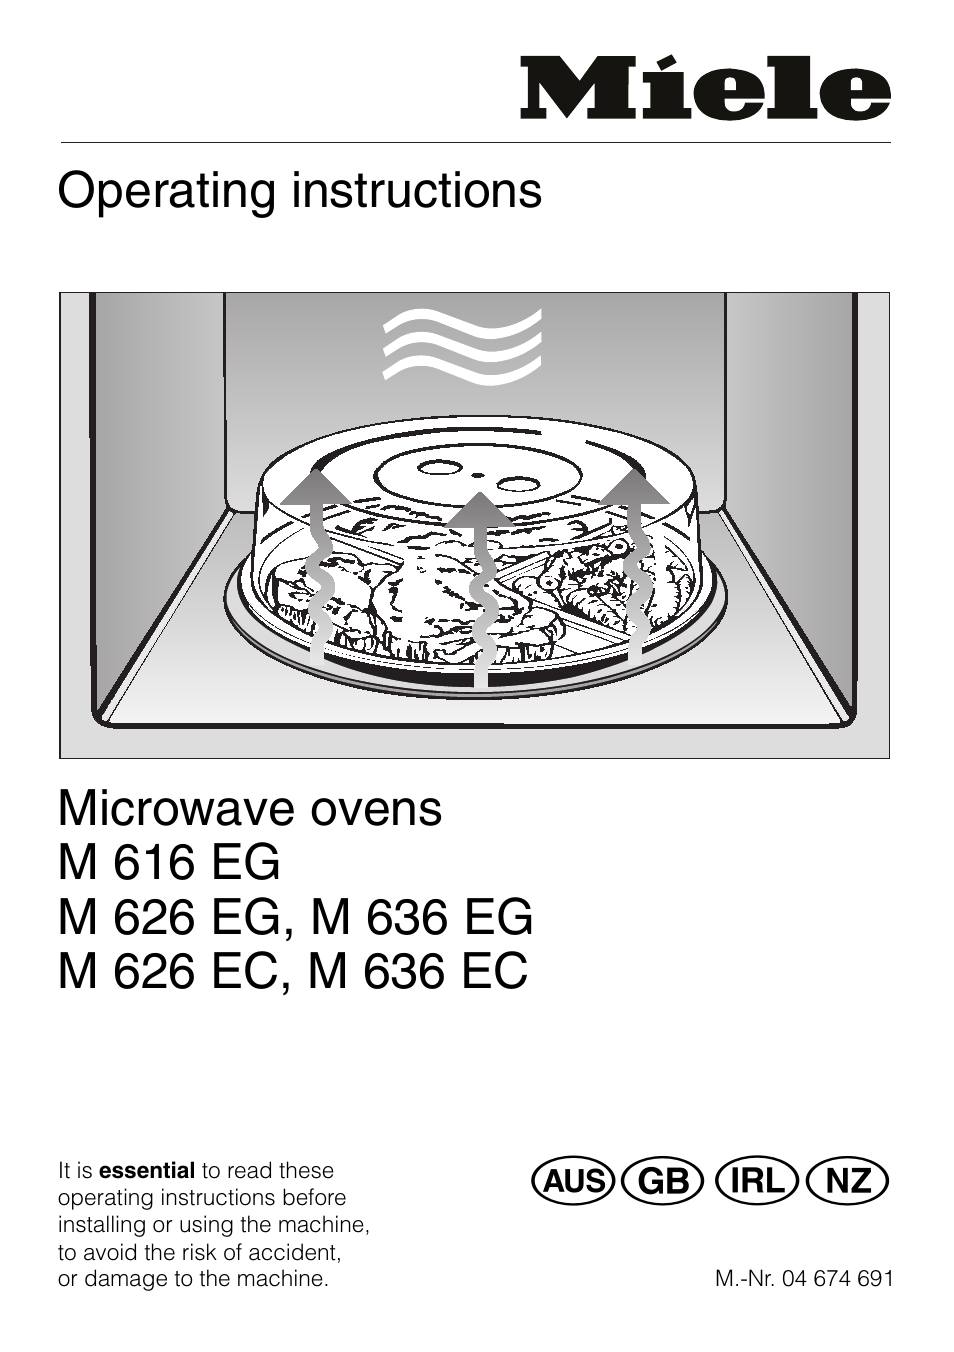 Miele M 636 Eg User Manual 44 Pages Also For 616 626 Ec